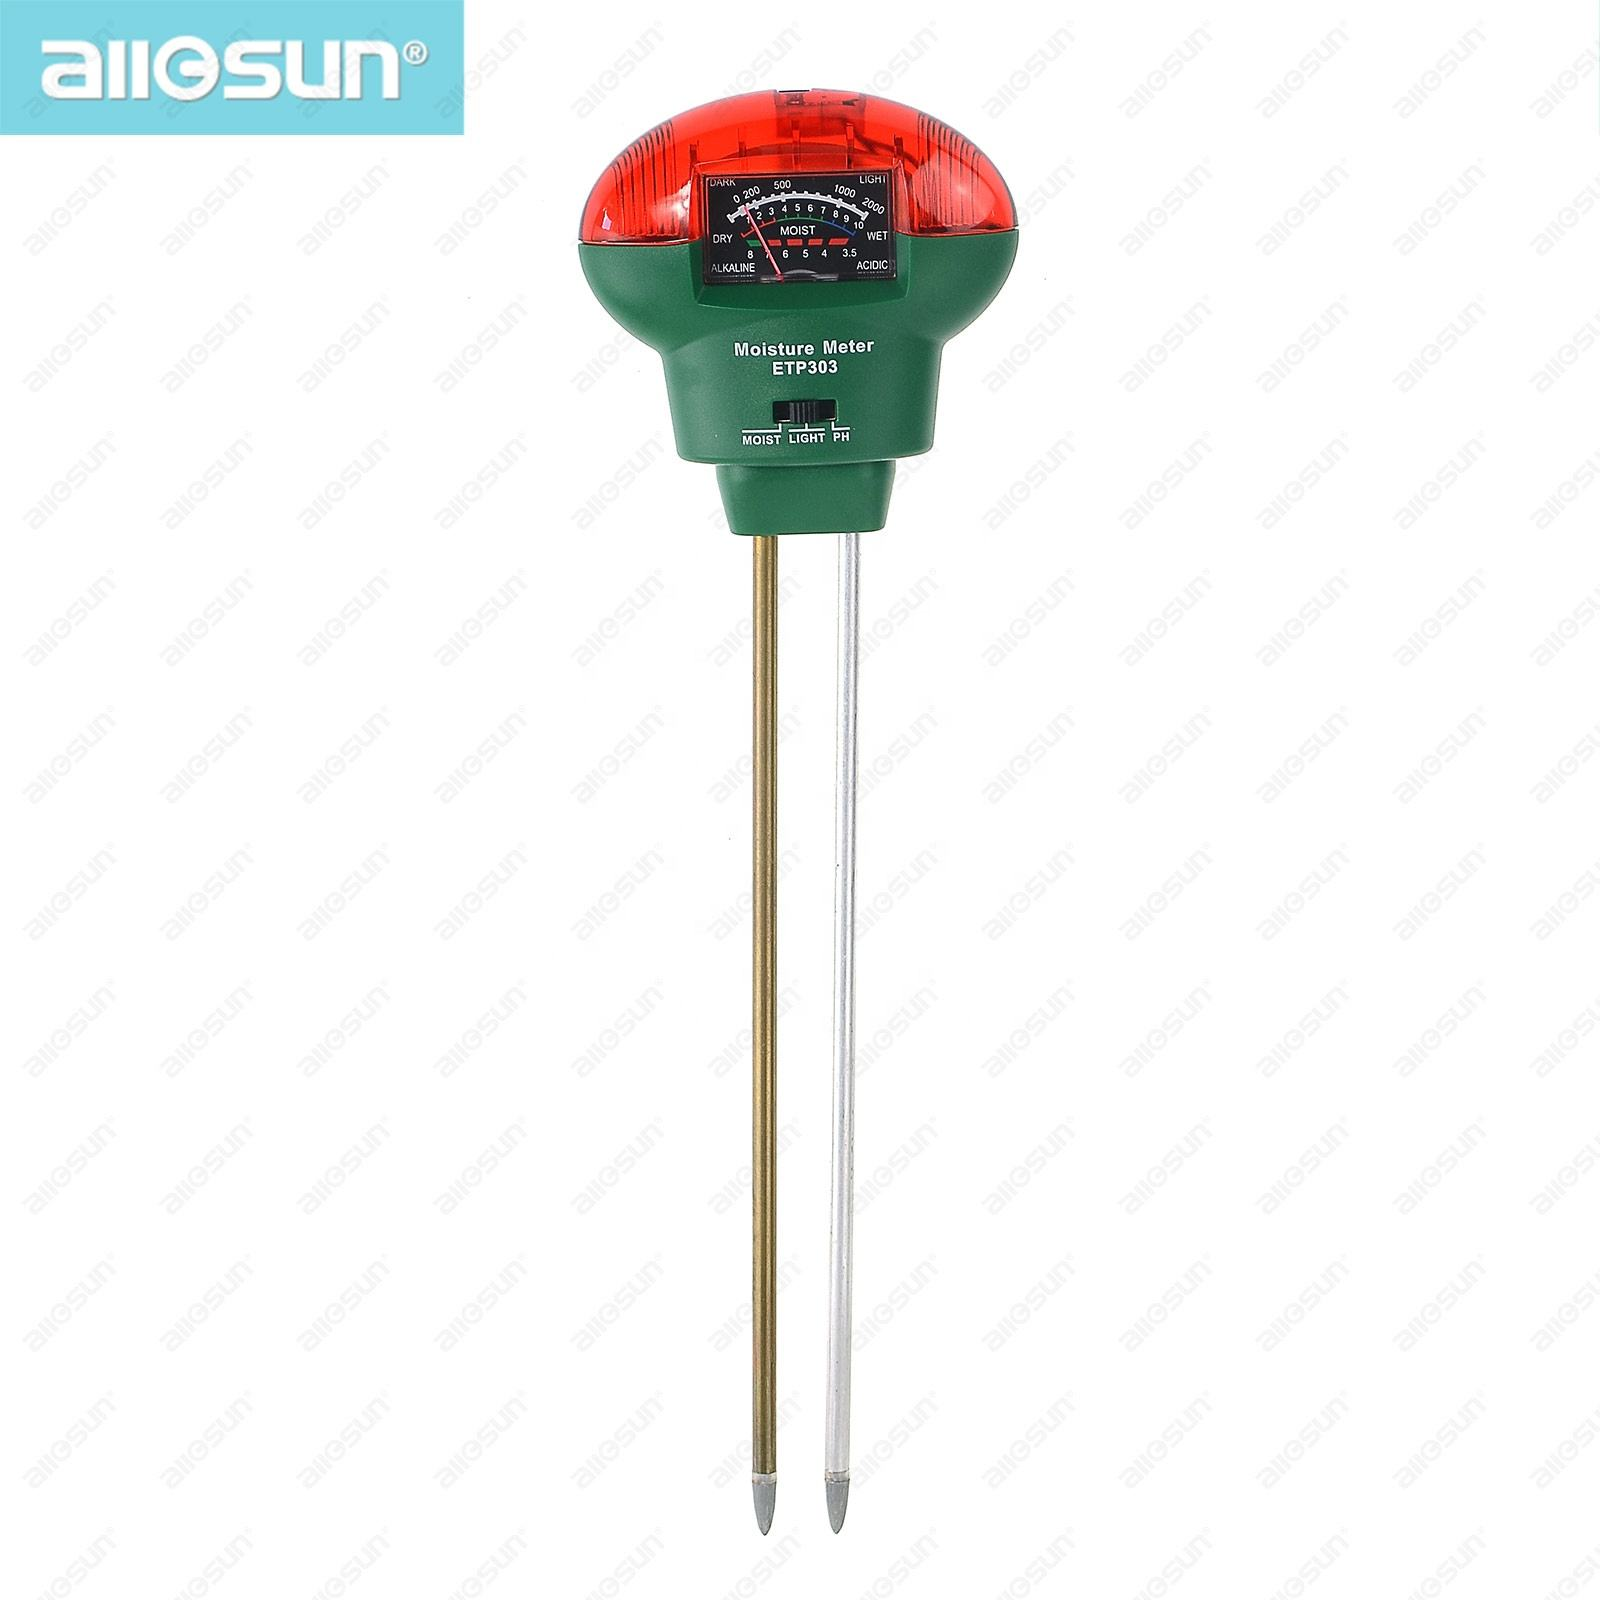 Analog 3-in-1 Moisture Meter Garden Tools with Light Soil Analog PH Meter Test Function Farming All Sun ETP303